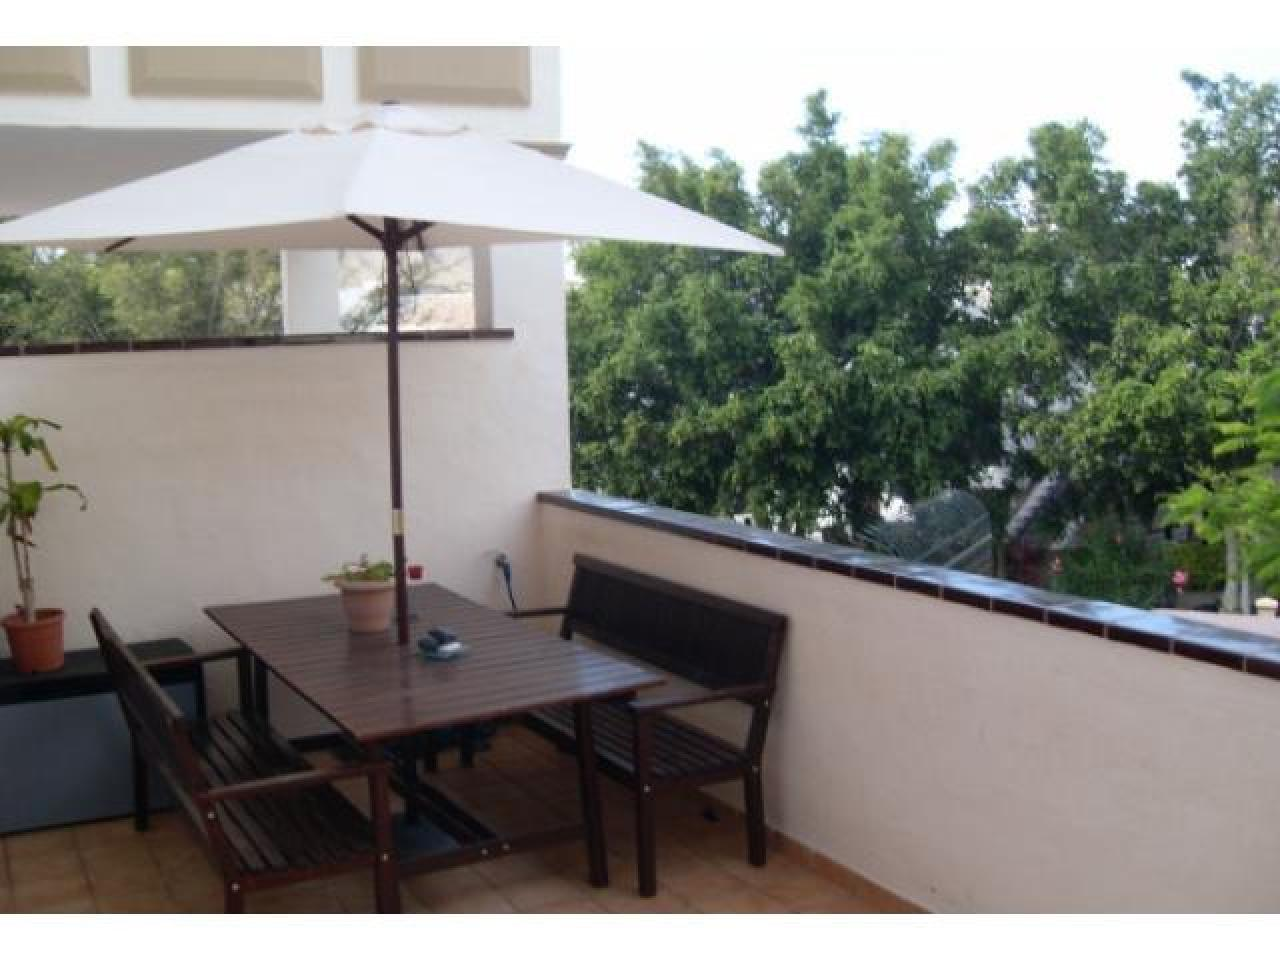 Real estate in Tenerife for sale » #141 - 3